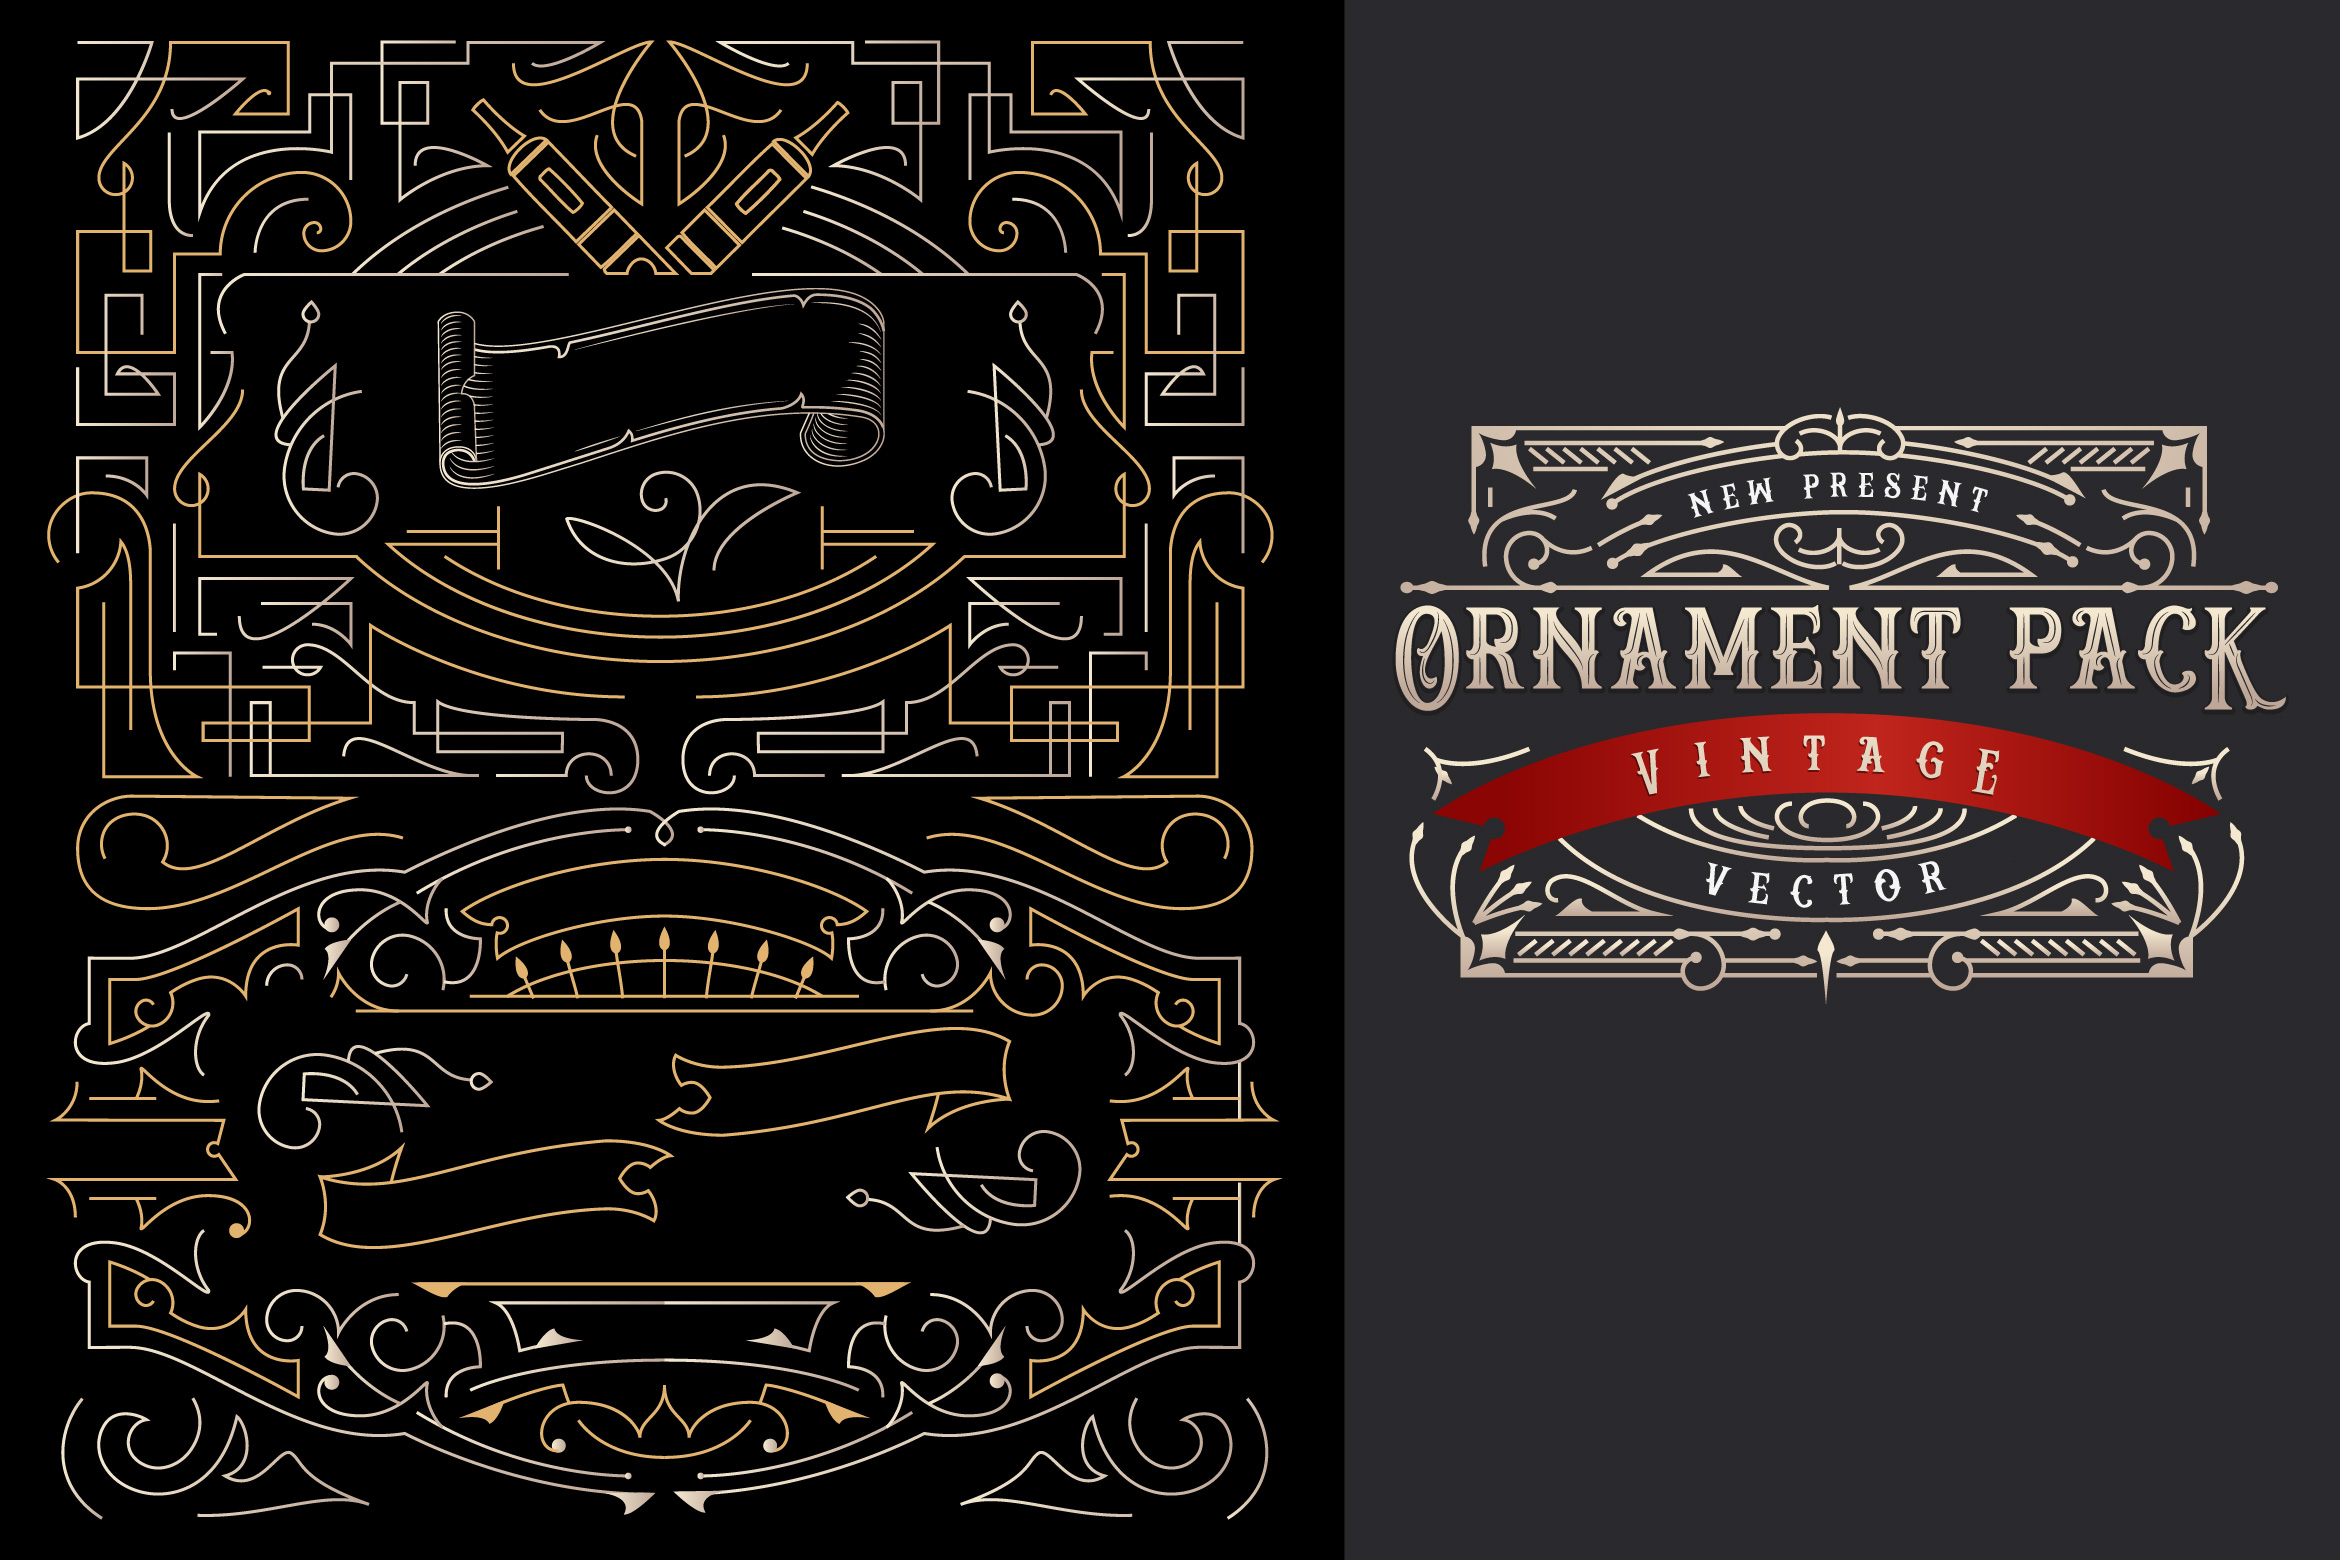 Ornament Pack Vintage 1 Graphic Objects By storictype - Image 2